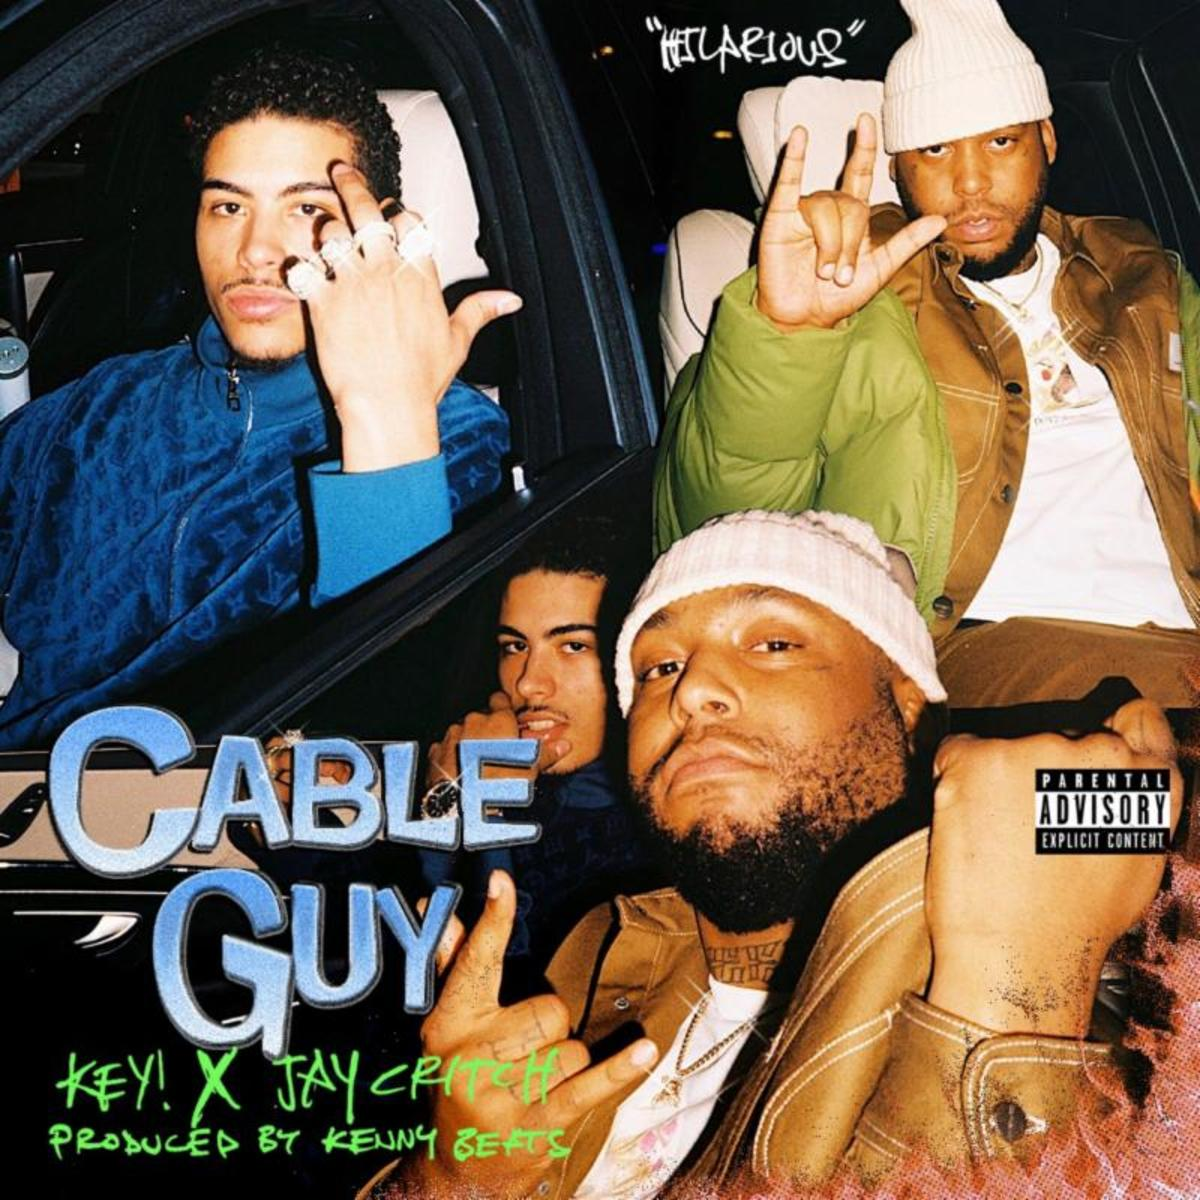 hight resolution of trades bars with jay critch on kenny beats produced cable guy